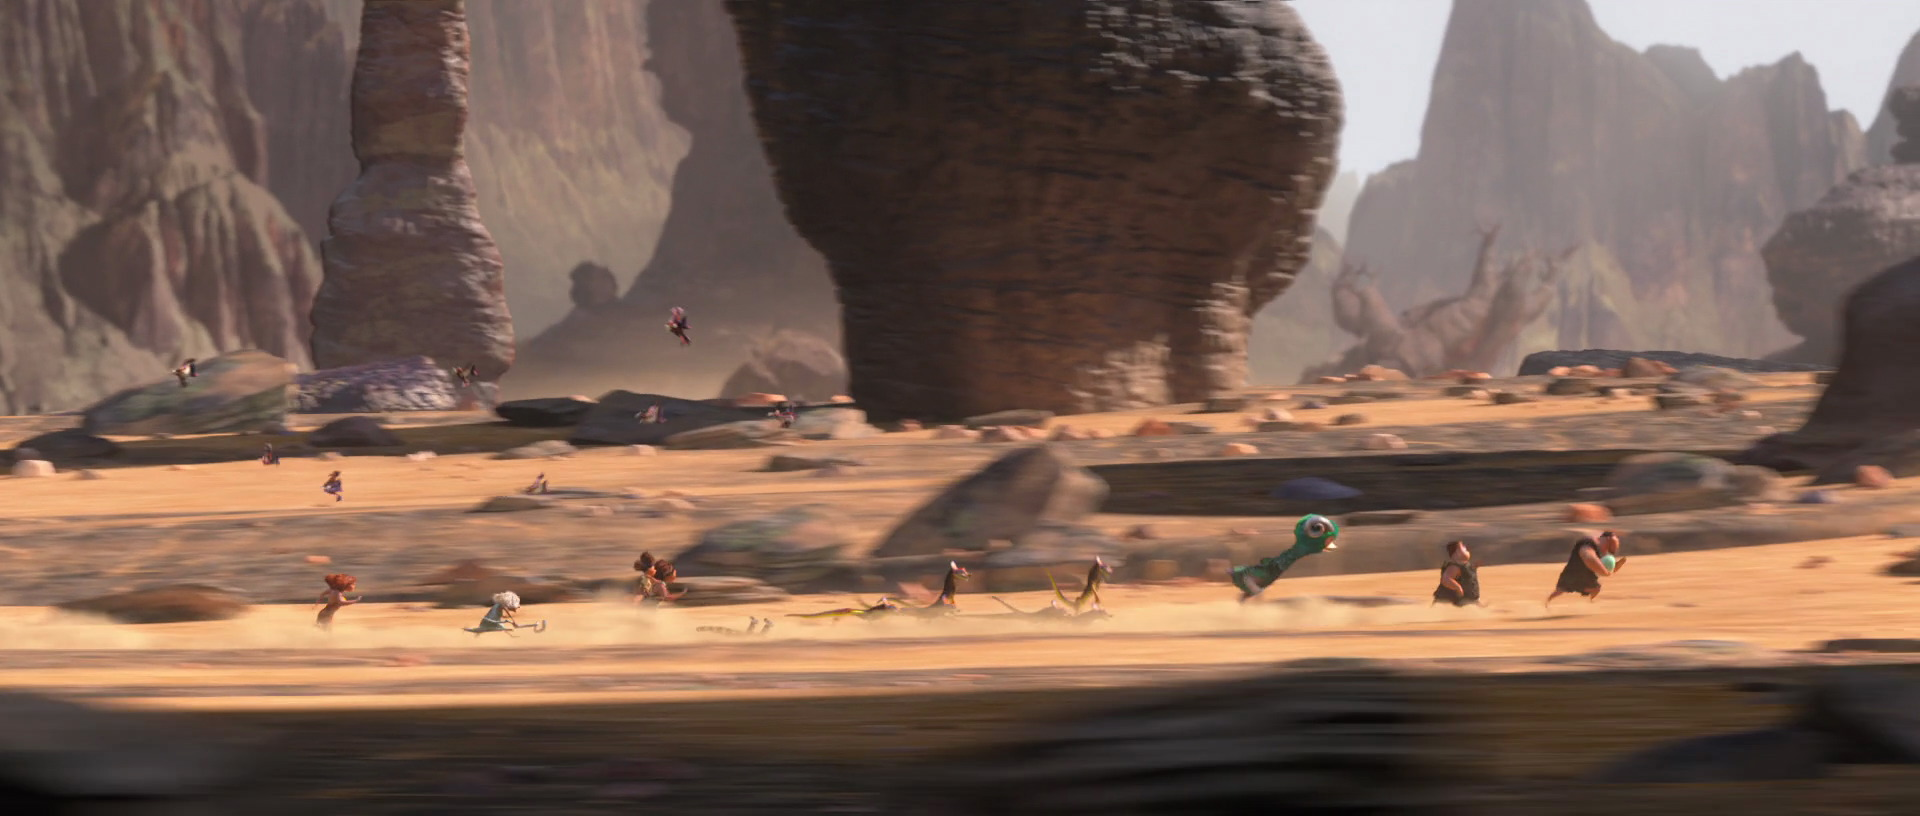 the-croods-disneyscreencaps.com-675.jpg